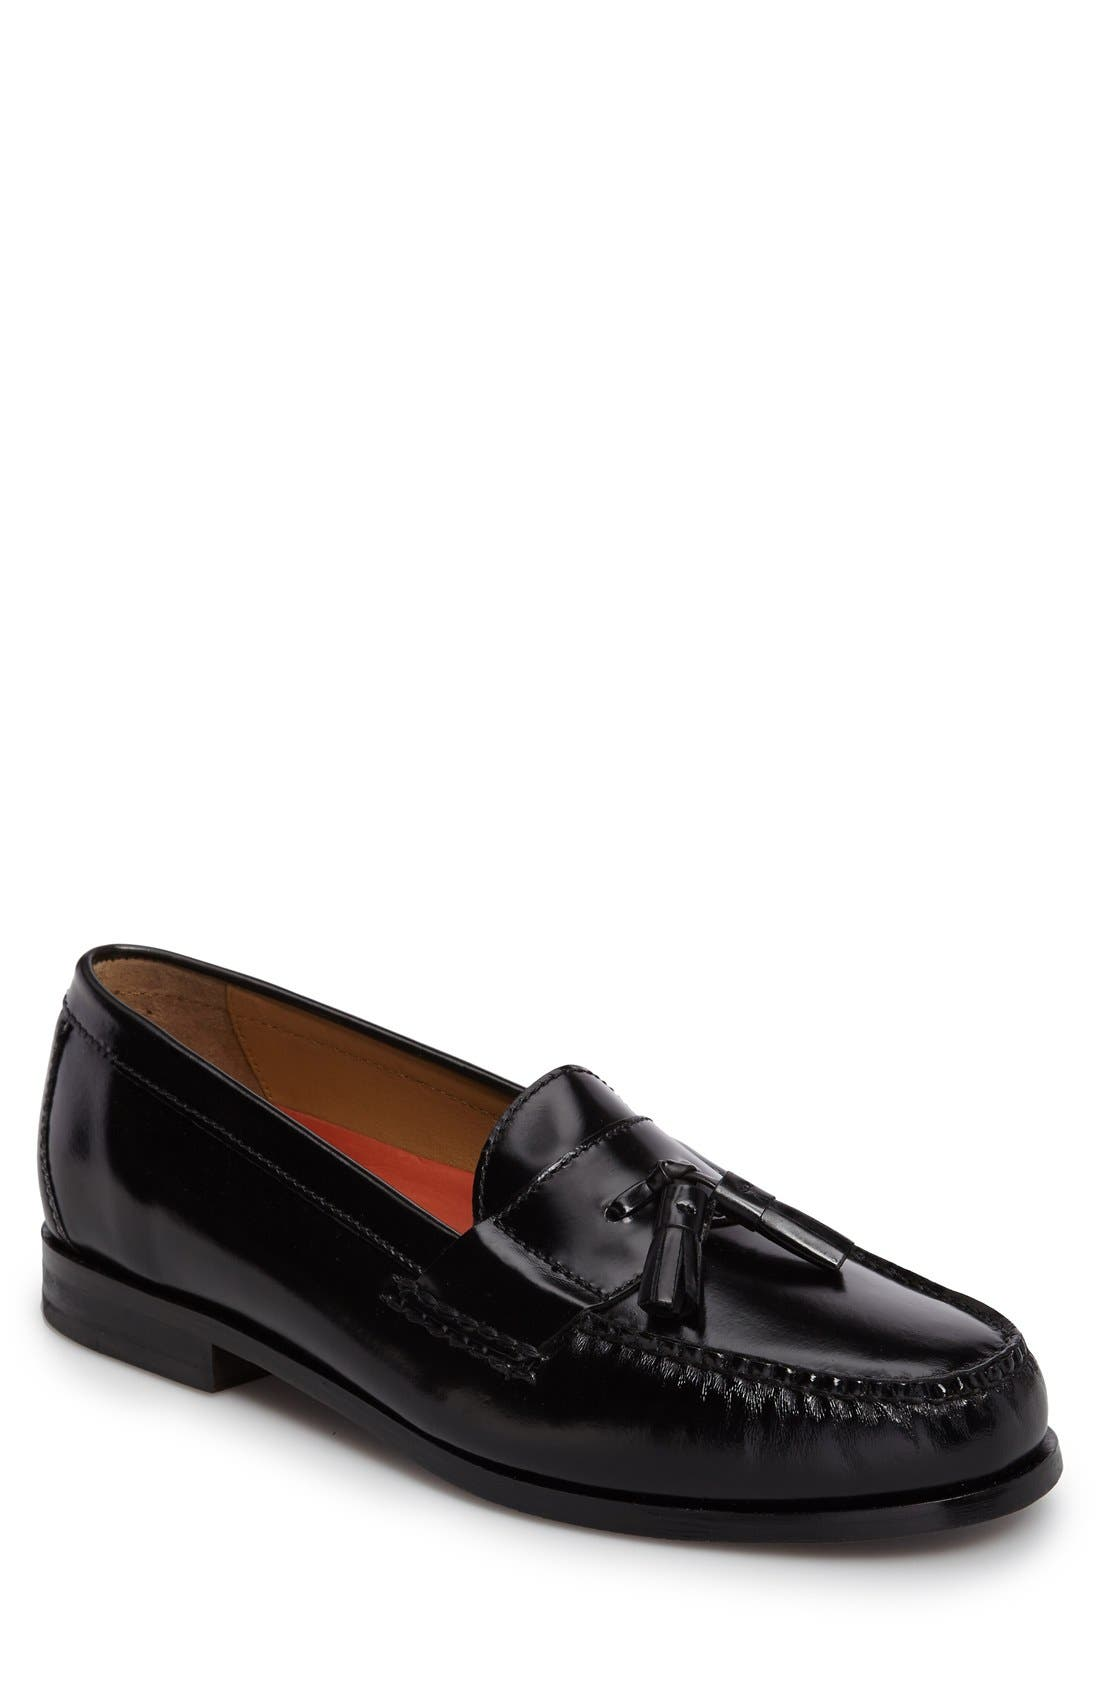 'Pinch Grand' Tassel Loafer,                             Main thumbnail 1, color,                             001